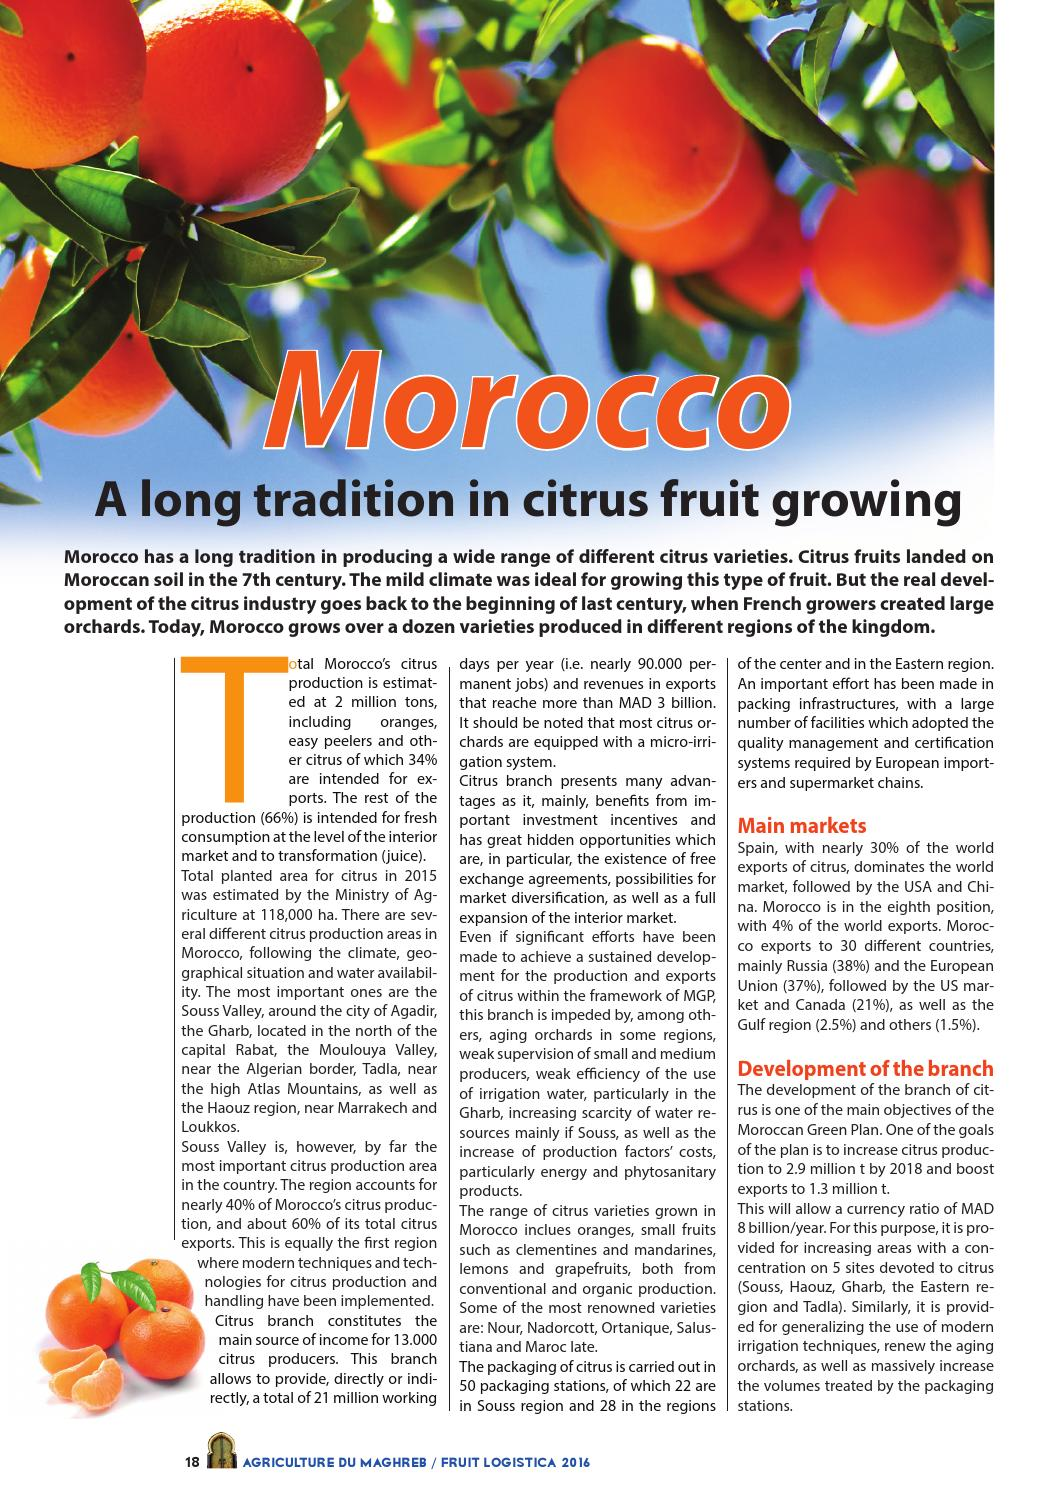 Fruit logistica 2016 by AGRICULTURE MAGHREB - issuu